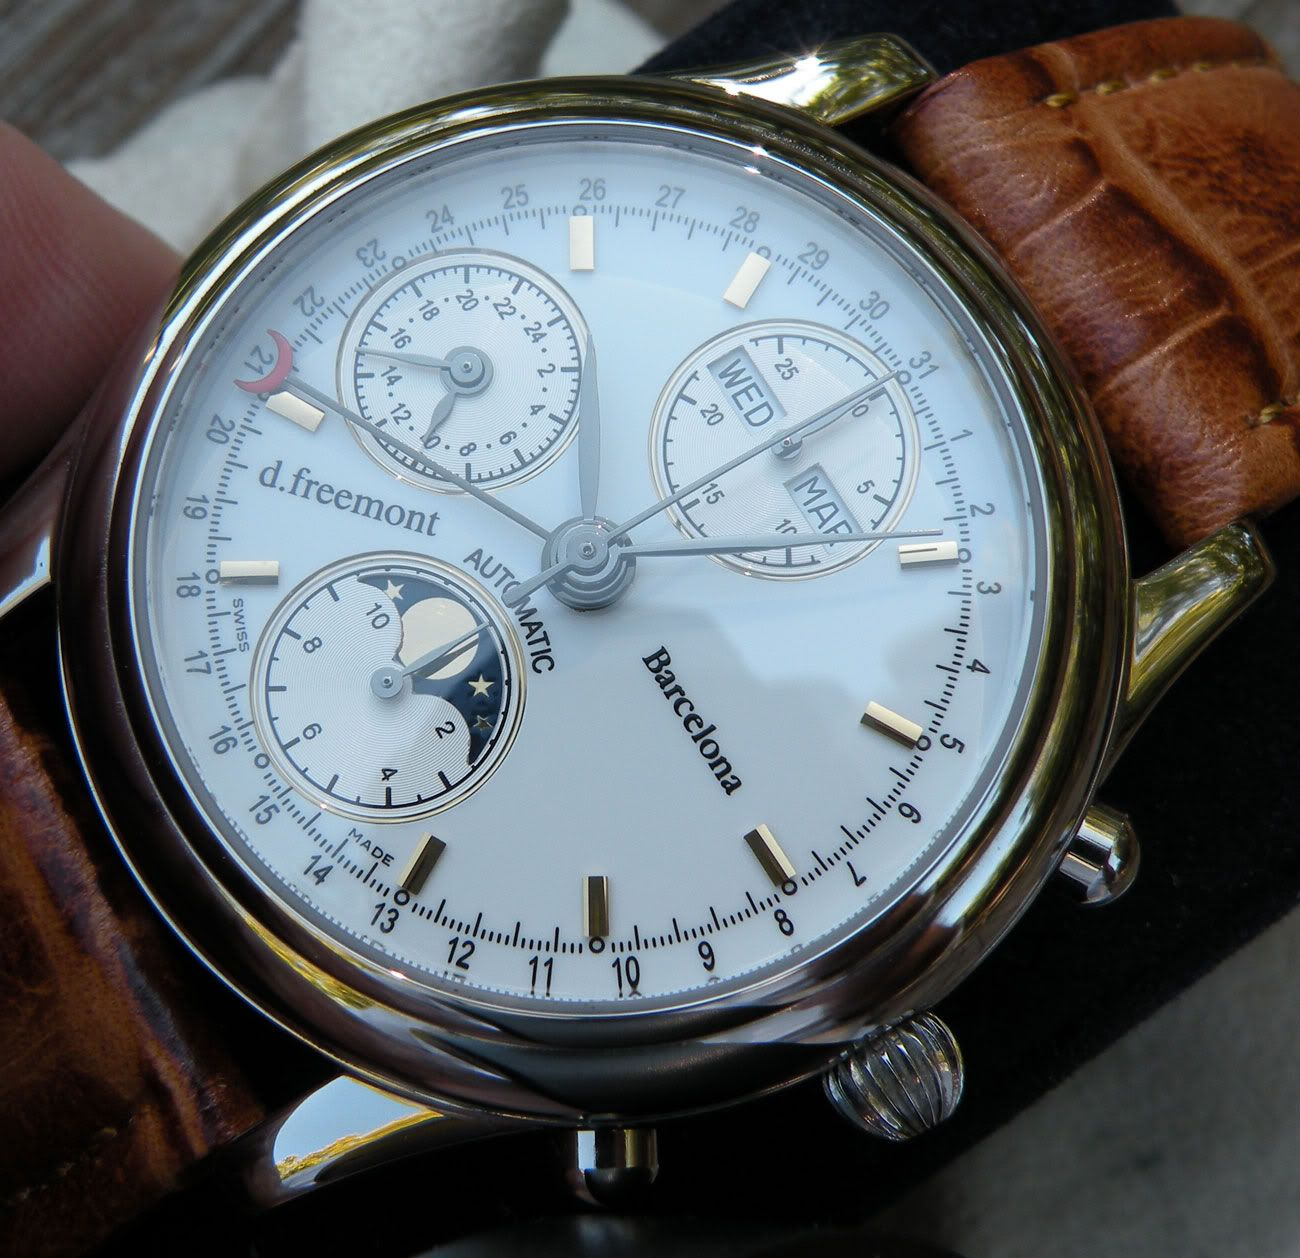 1e8cf81f487 The Most beautiful Moonphase watch you have seen  - Page 3